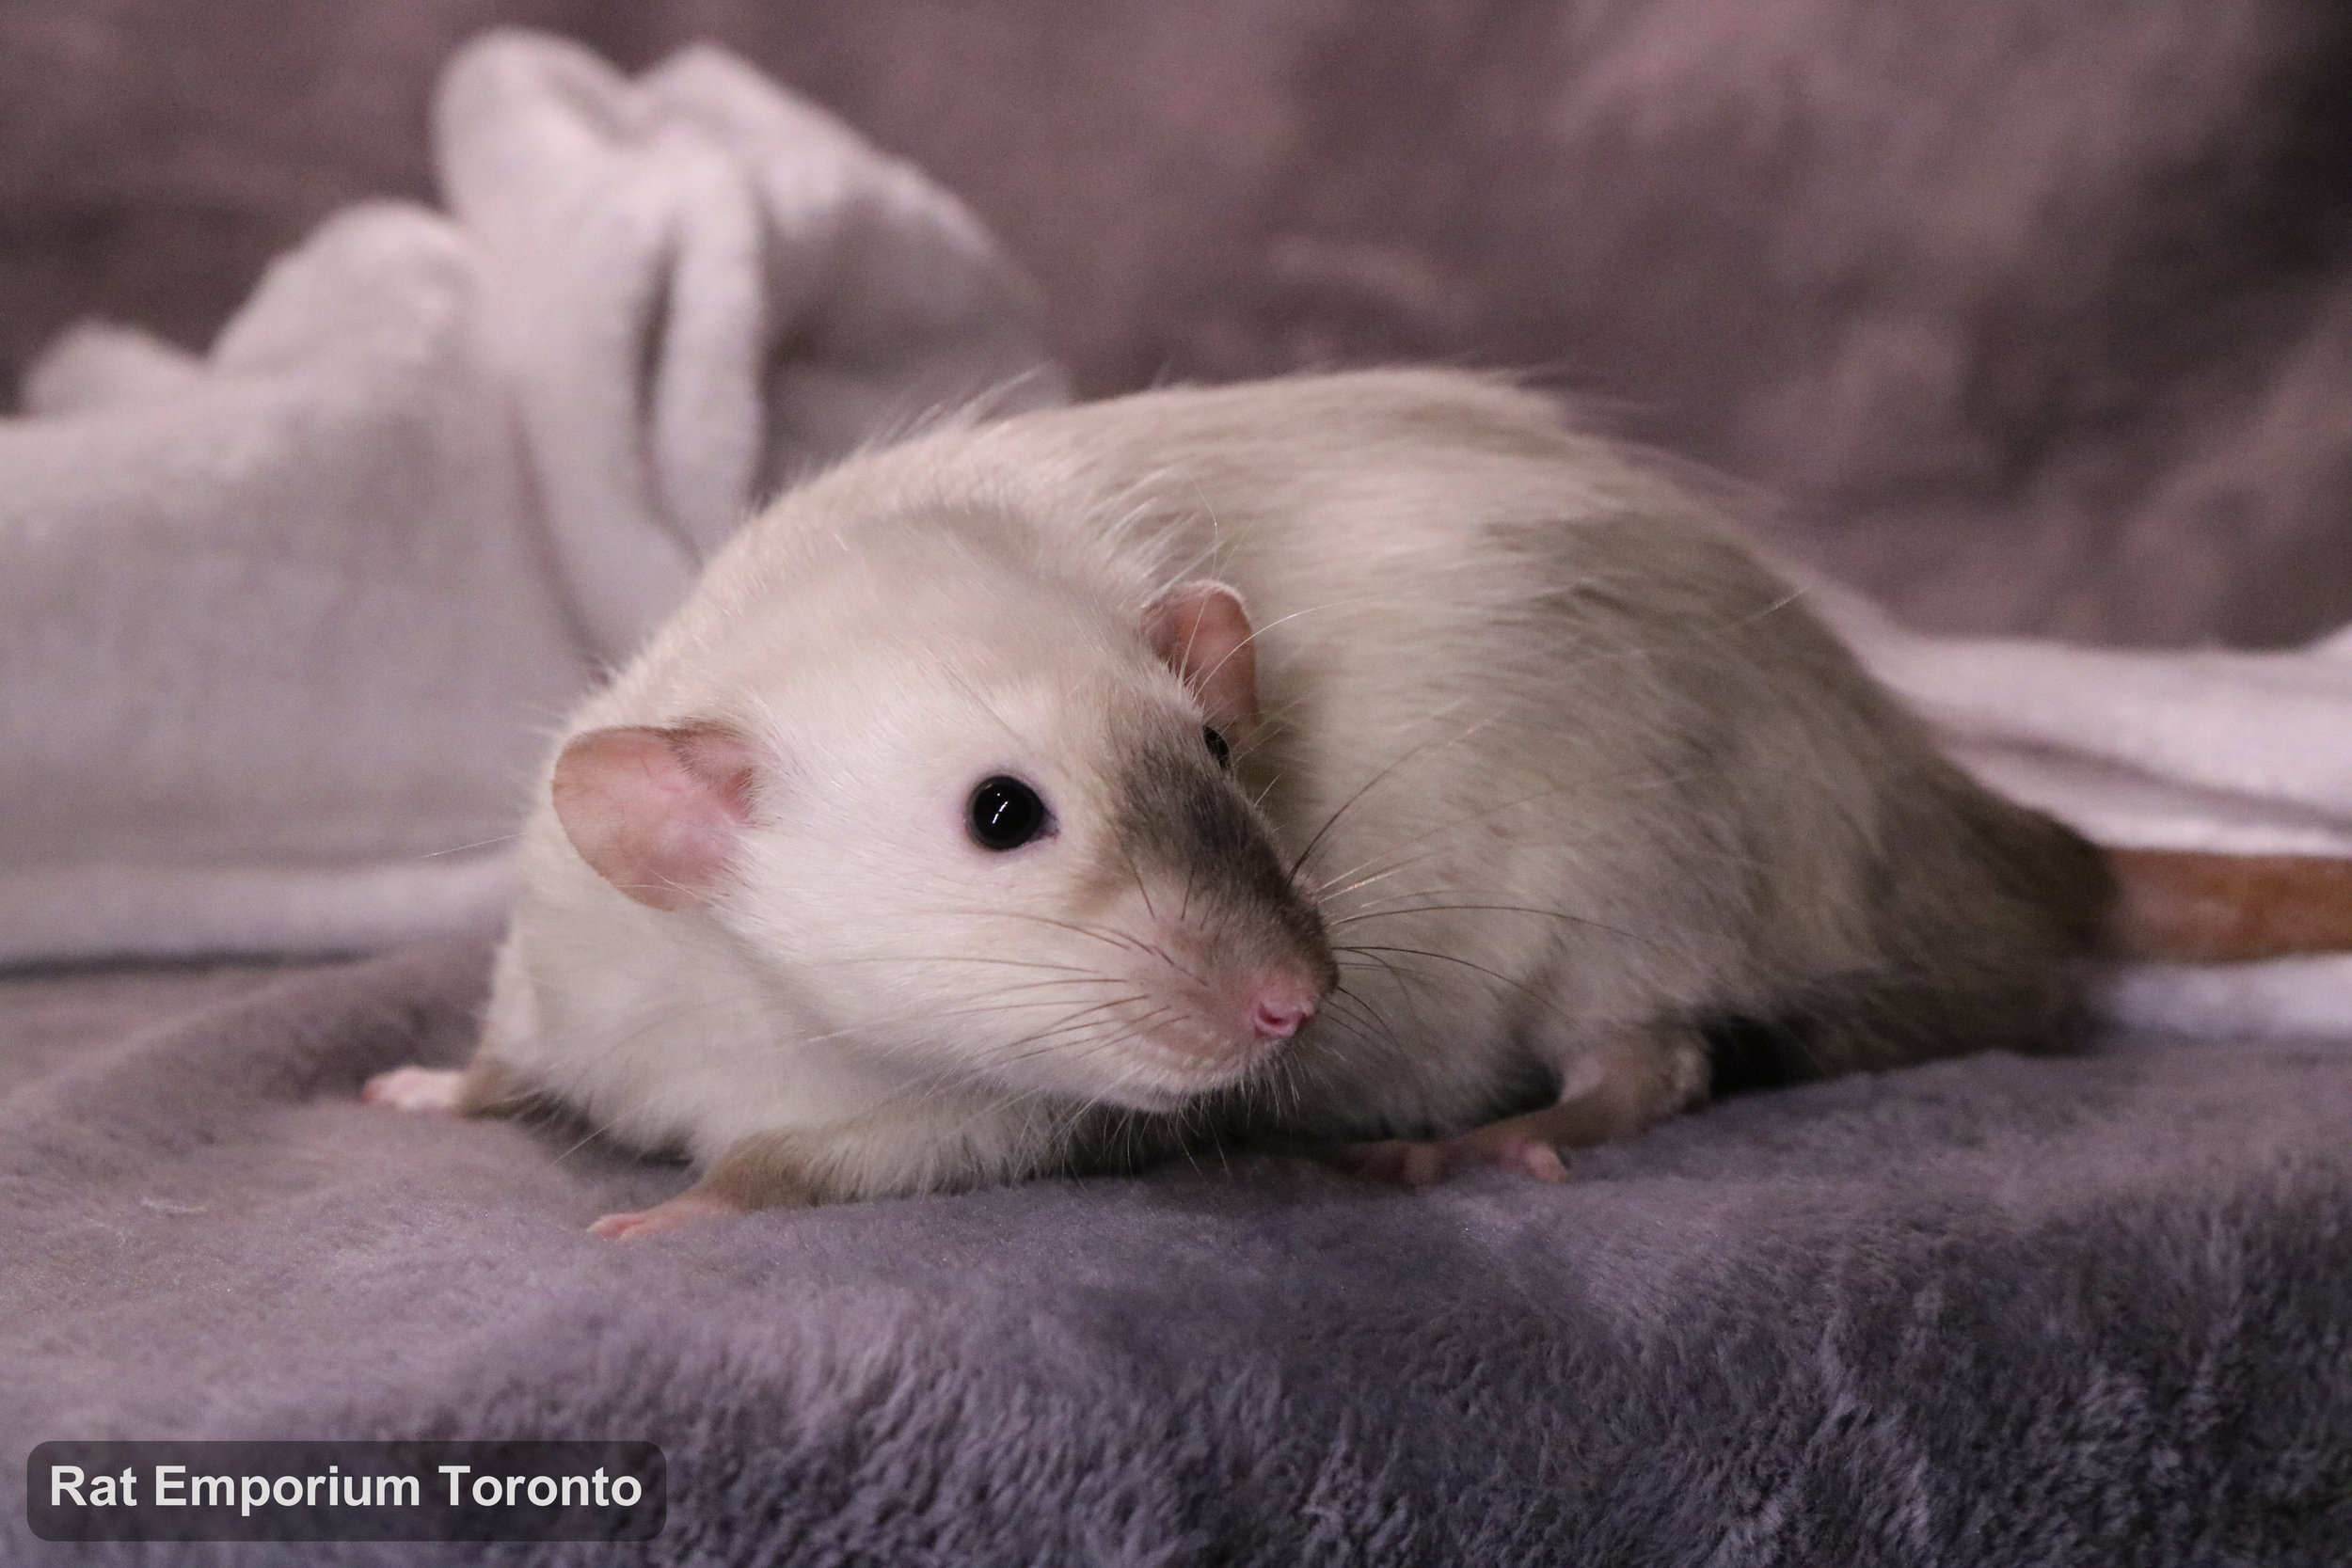 Dandan, my BE siamese dumbo rat - born and raised at the Rat Emporium Toronto - adopt pet rats - rat breeder